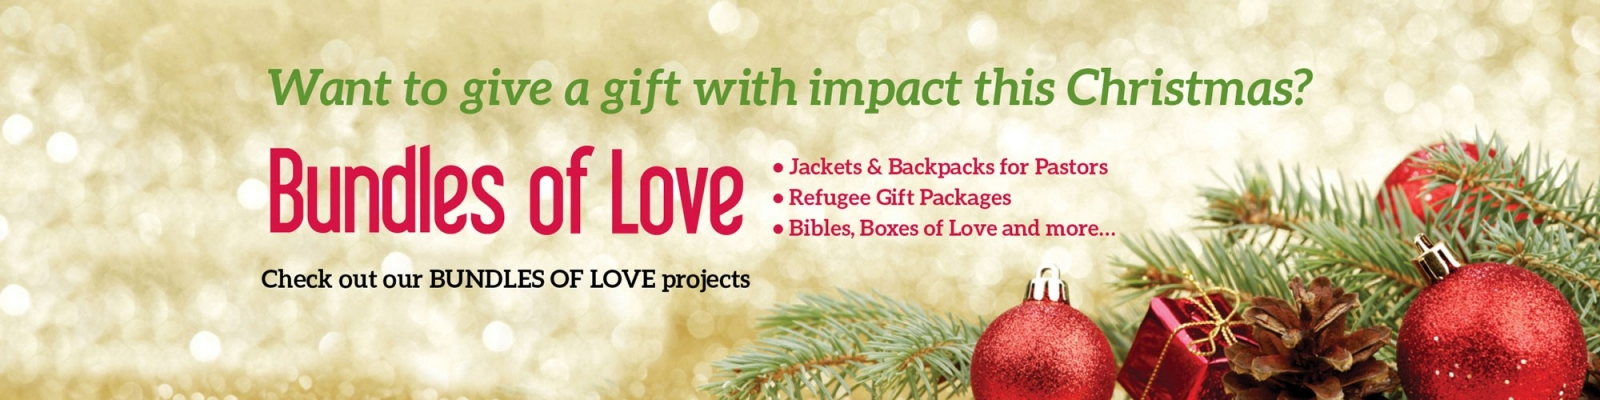 Christmas gifts national church planters encourage evangelism